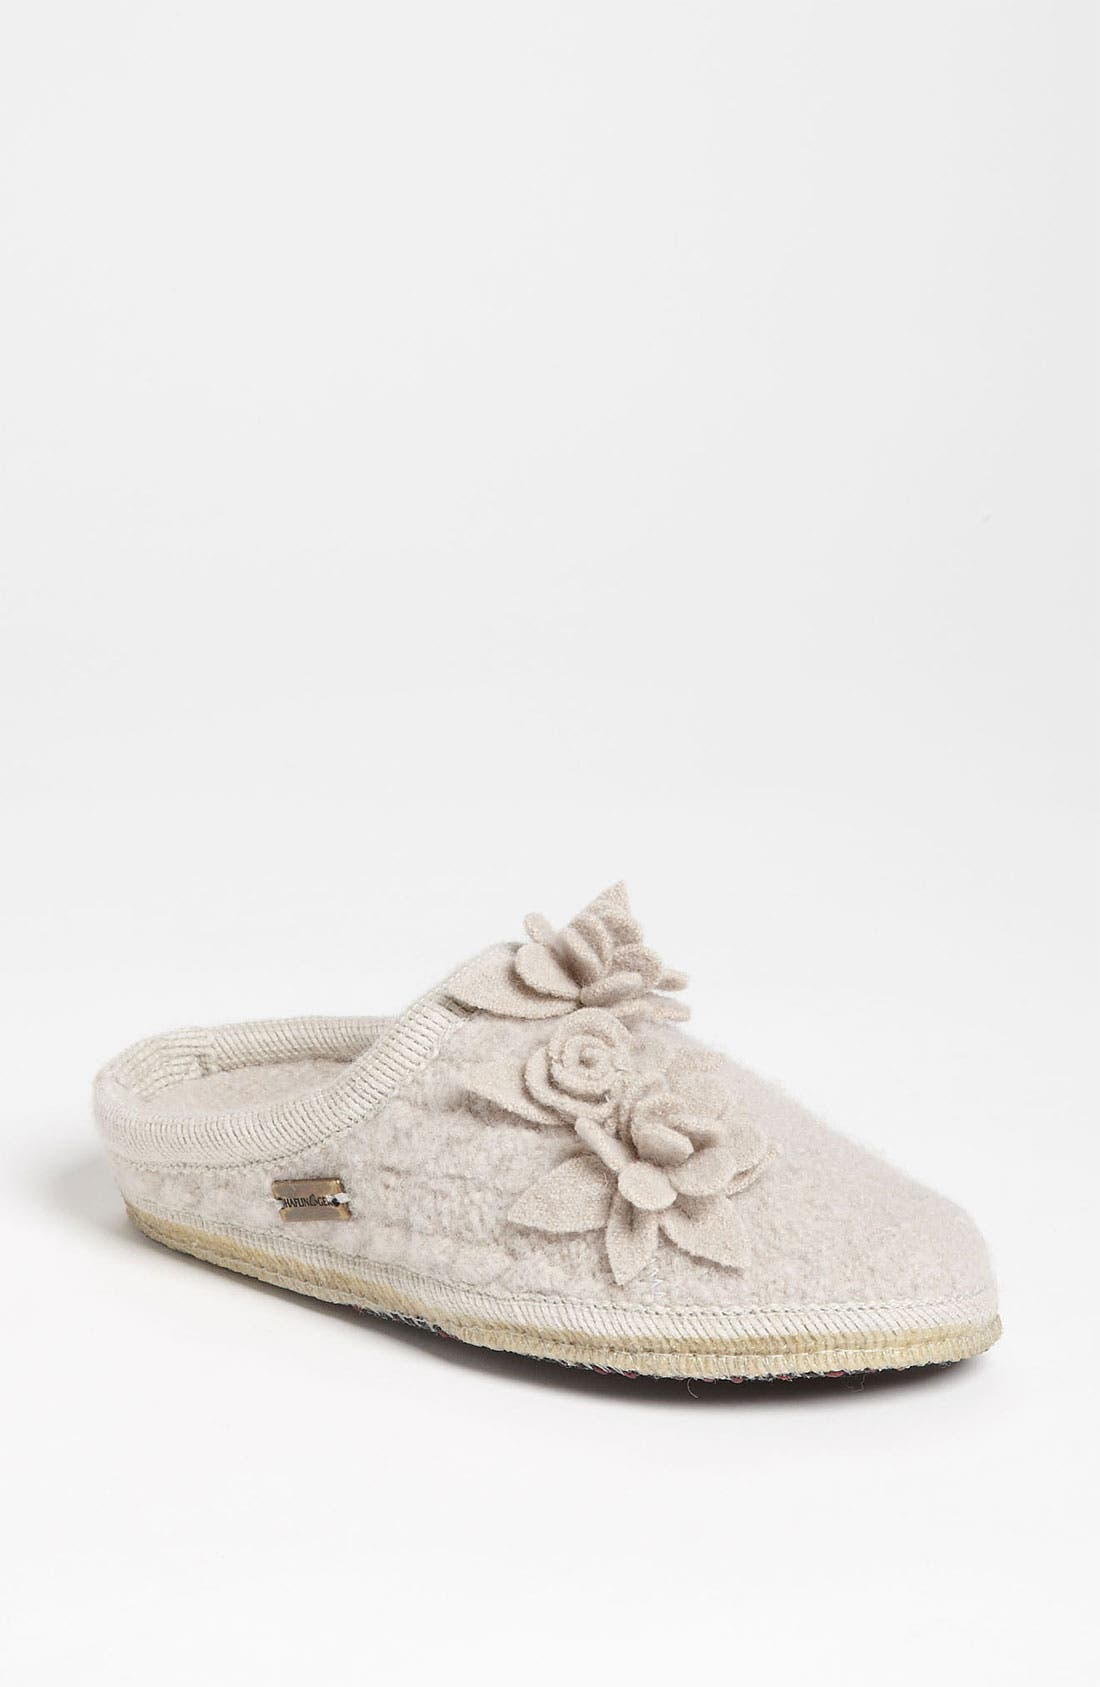 Alternate Image 1 Selected - Haflinger 'Romantic Flowers' Slipper